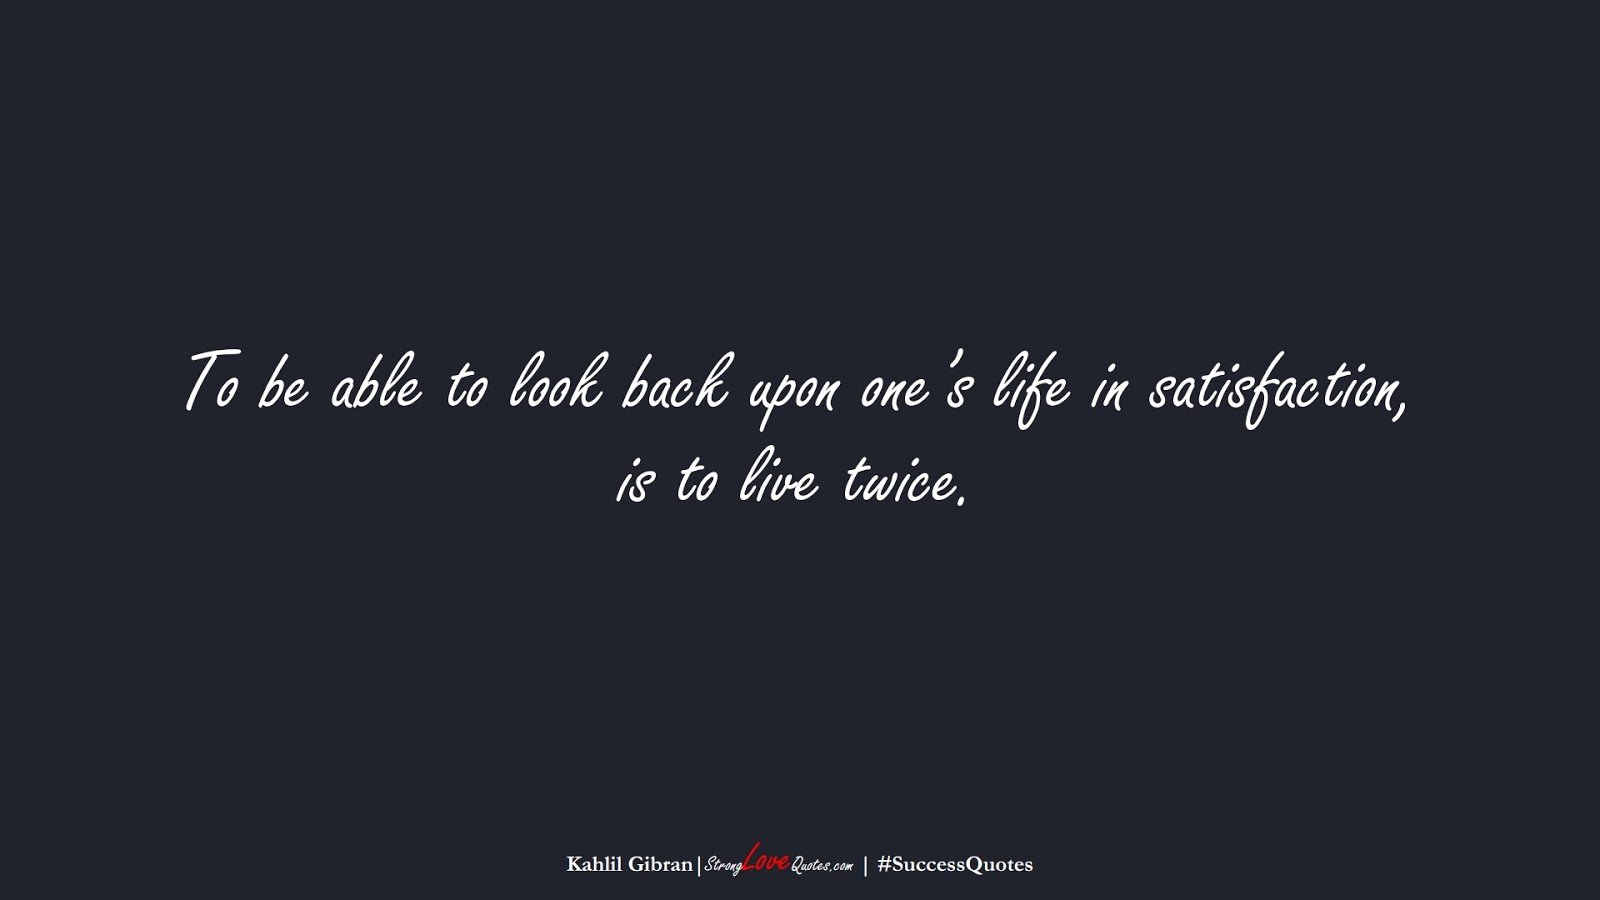 To be able to look back upon one's life in satisfaction, is to live twice. (Kahlil Gibran);  #SuccessQuotes